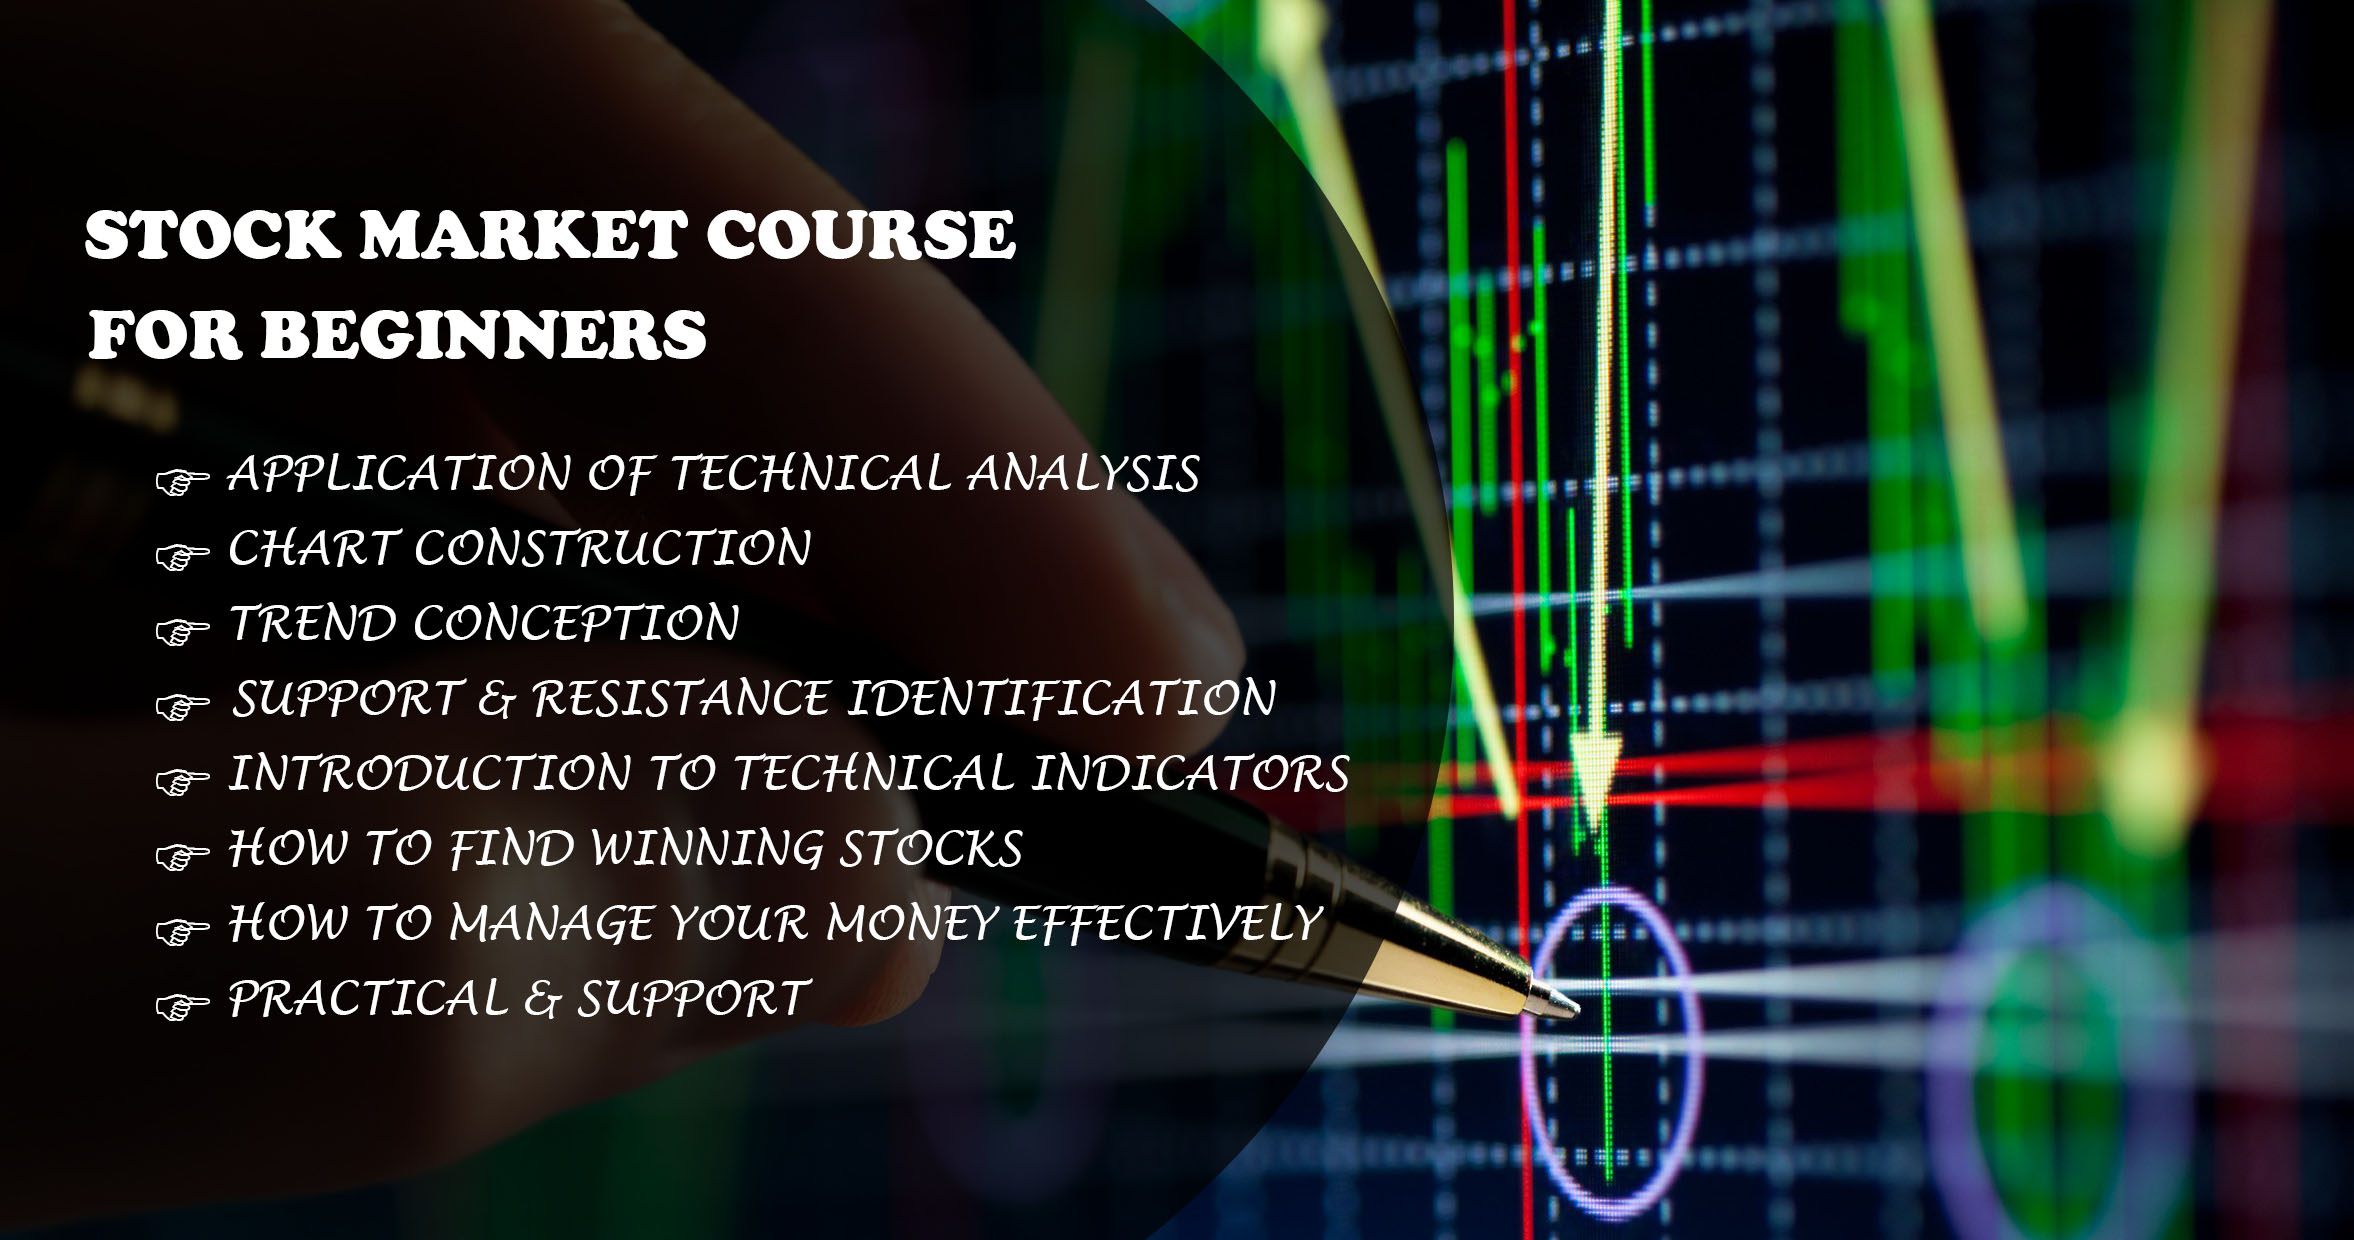 Basic Technical Analysis Course